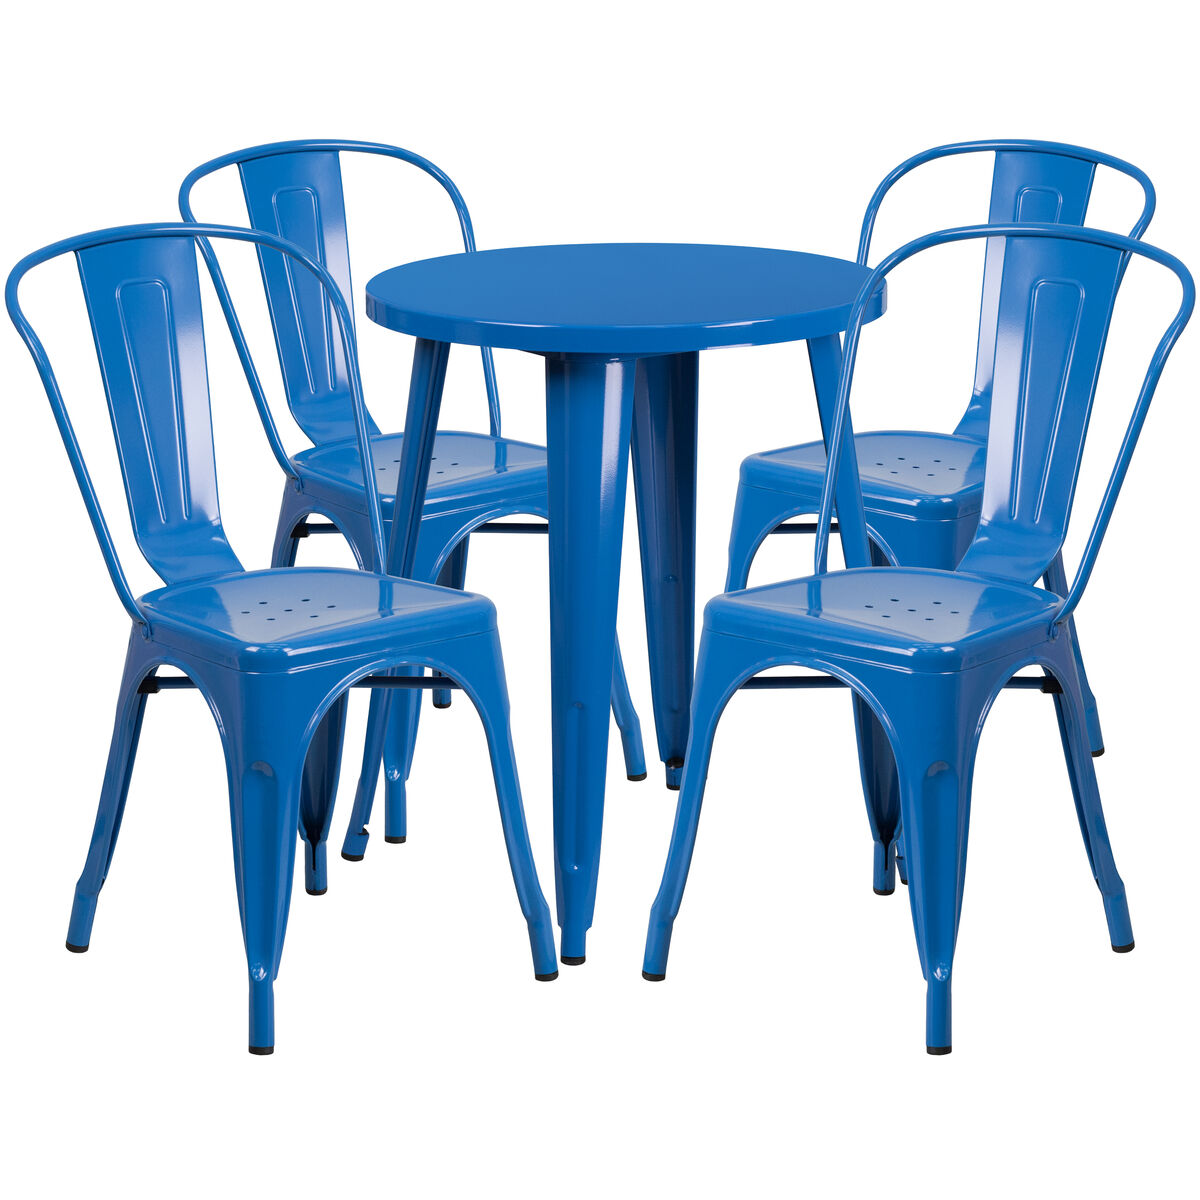 RD Blue Metal Table Set CHTHCAFEBLGG - Metal cafe table and chairs